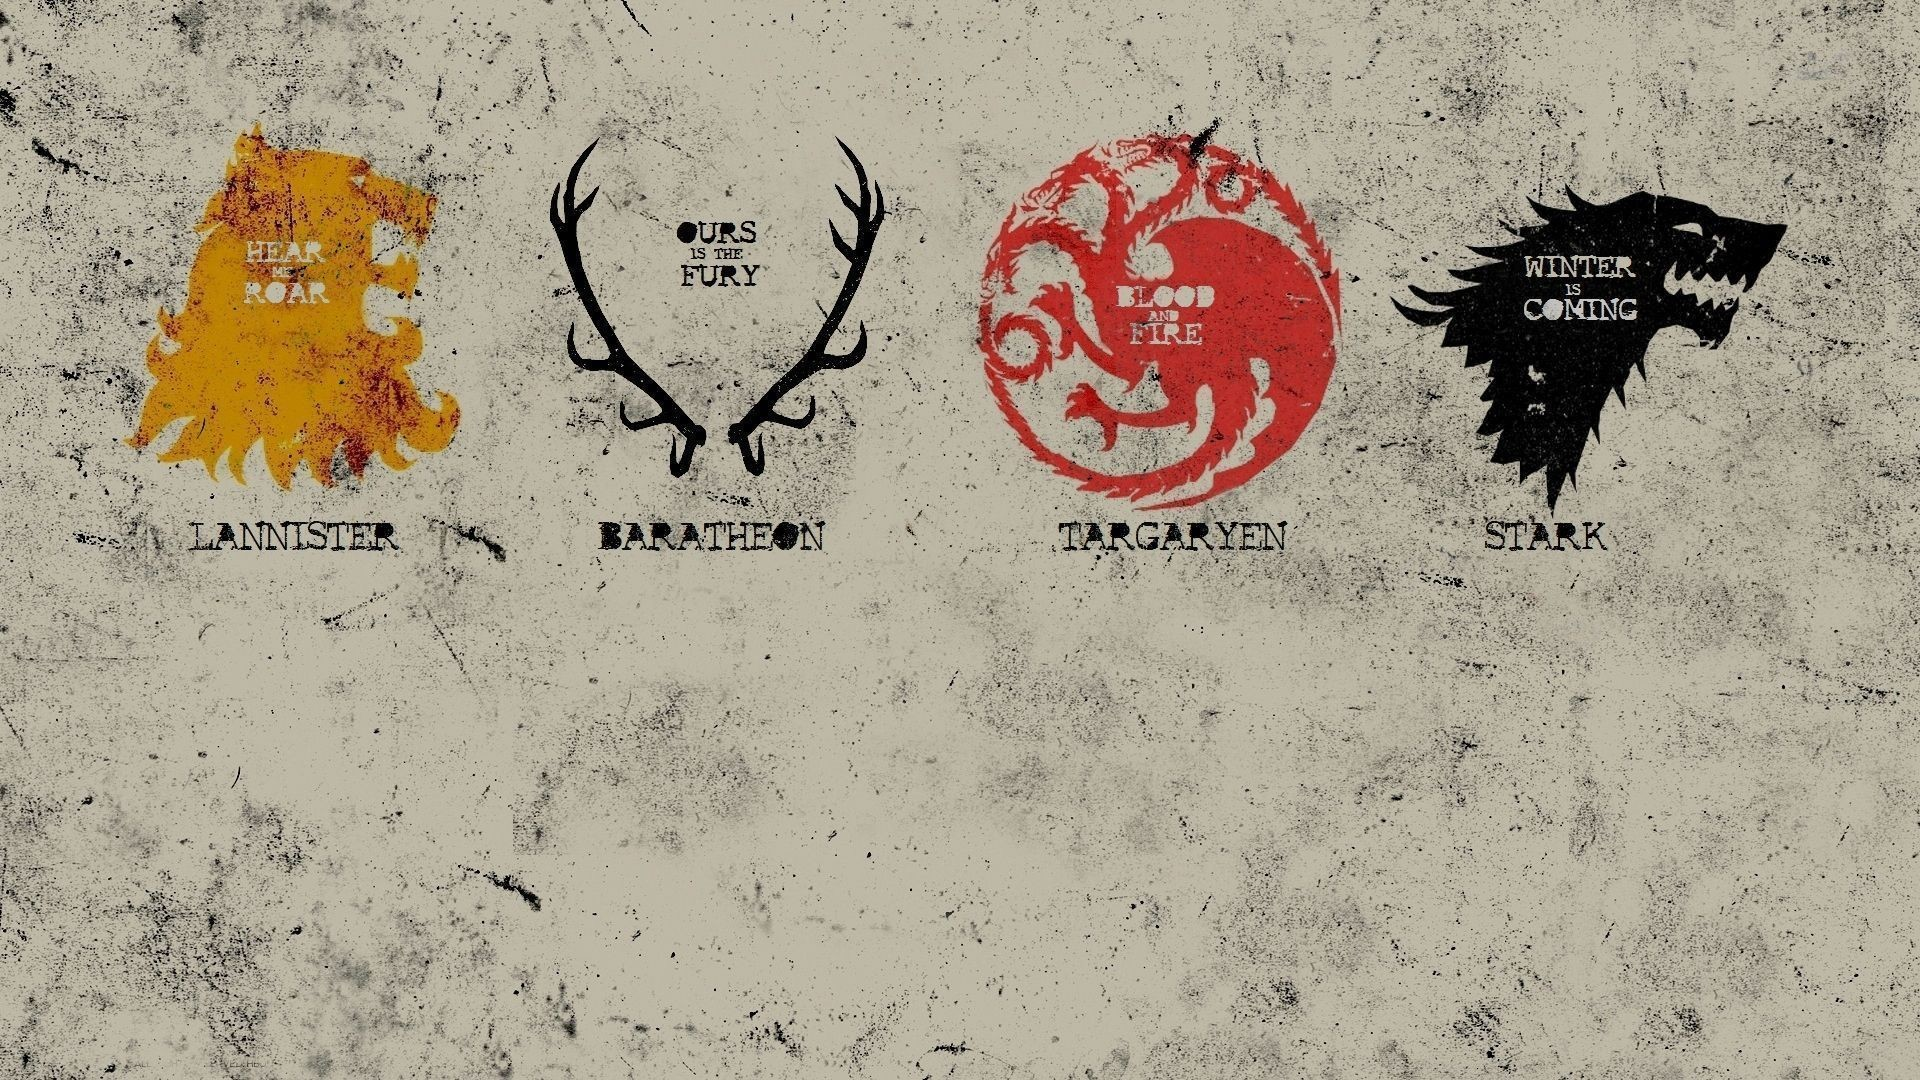 1920x1080 House stark wallpaper jpg 292242